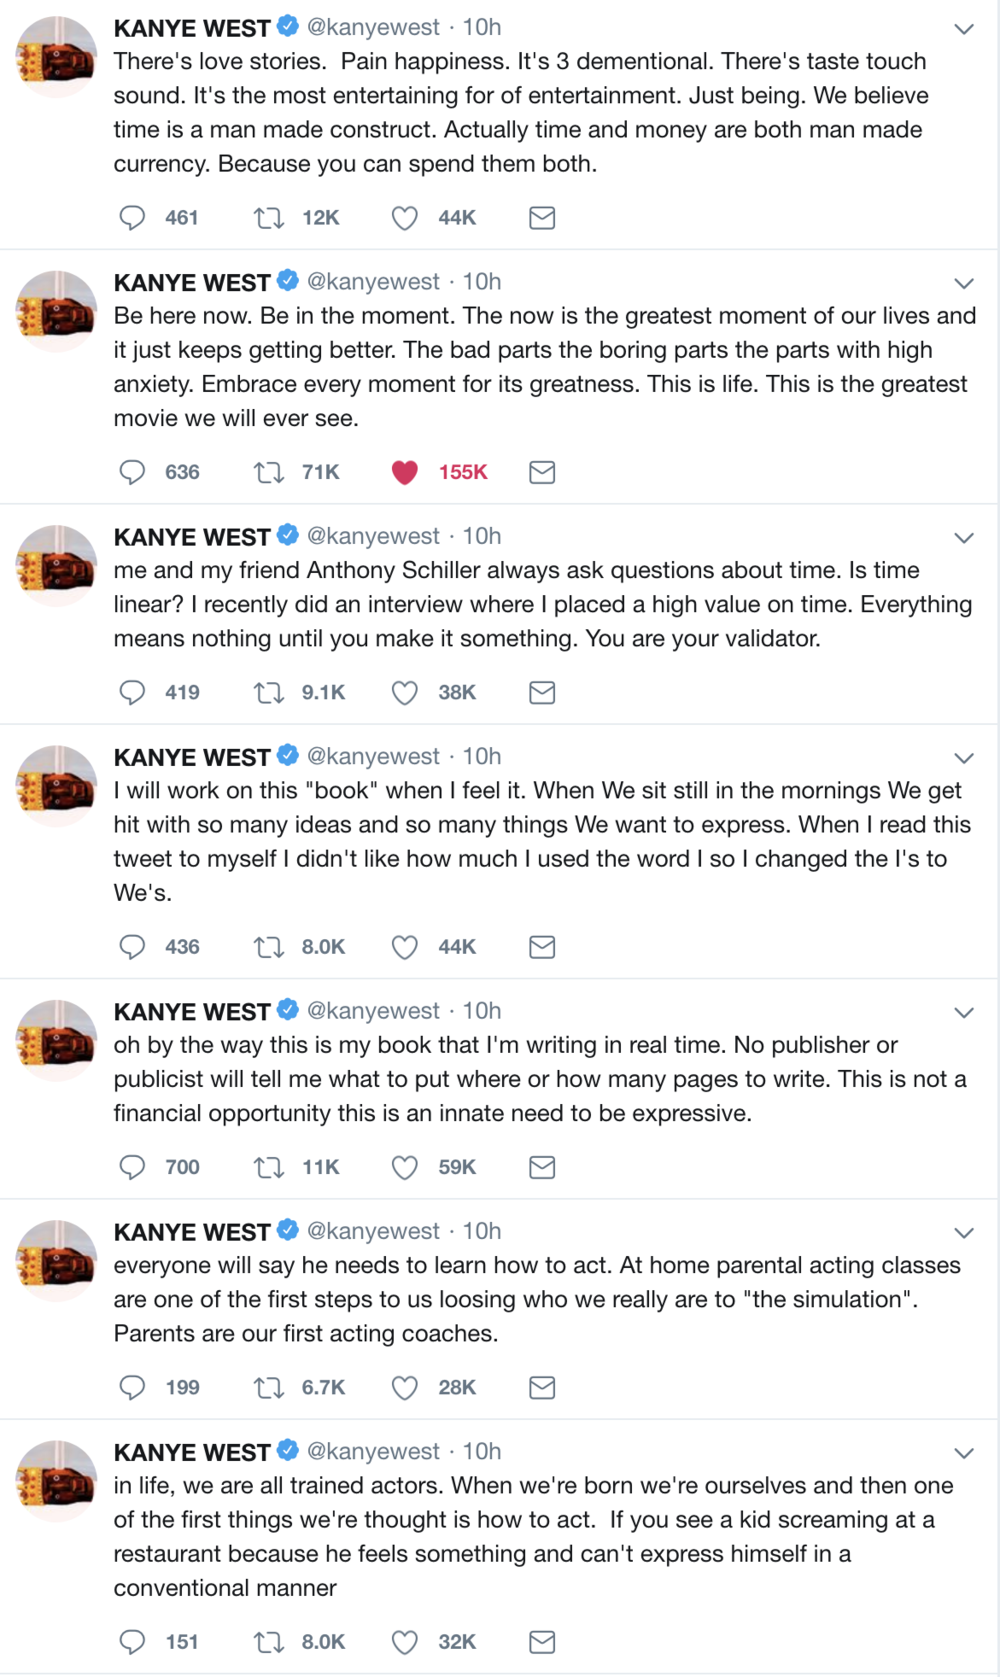 The new philosophical tweets of Ye